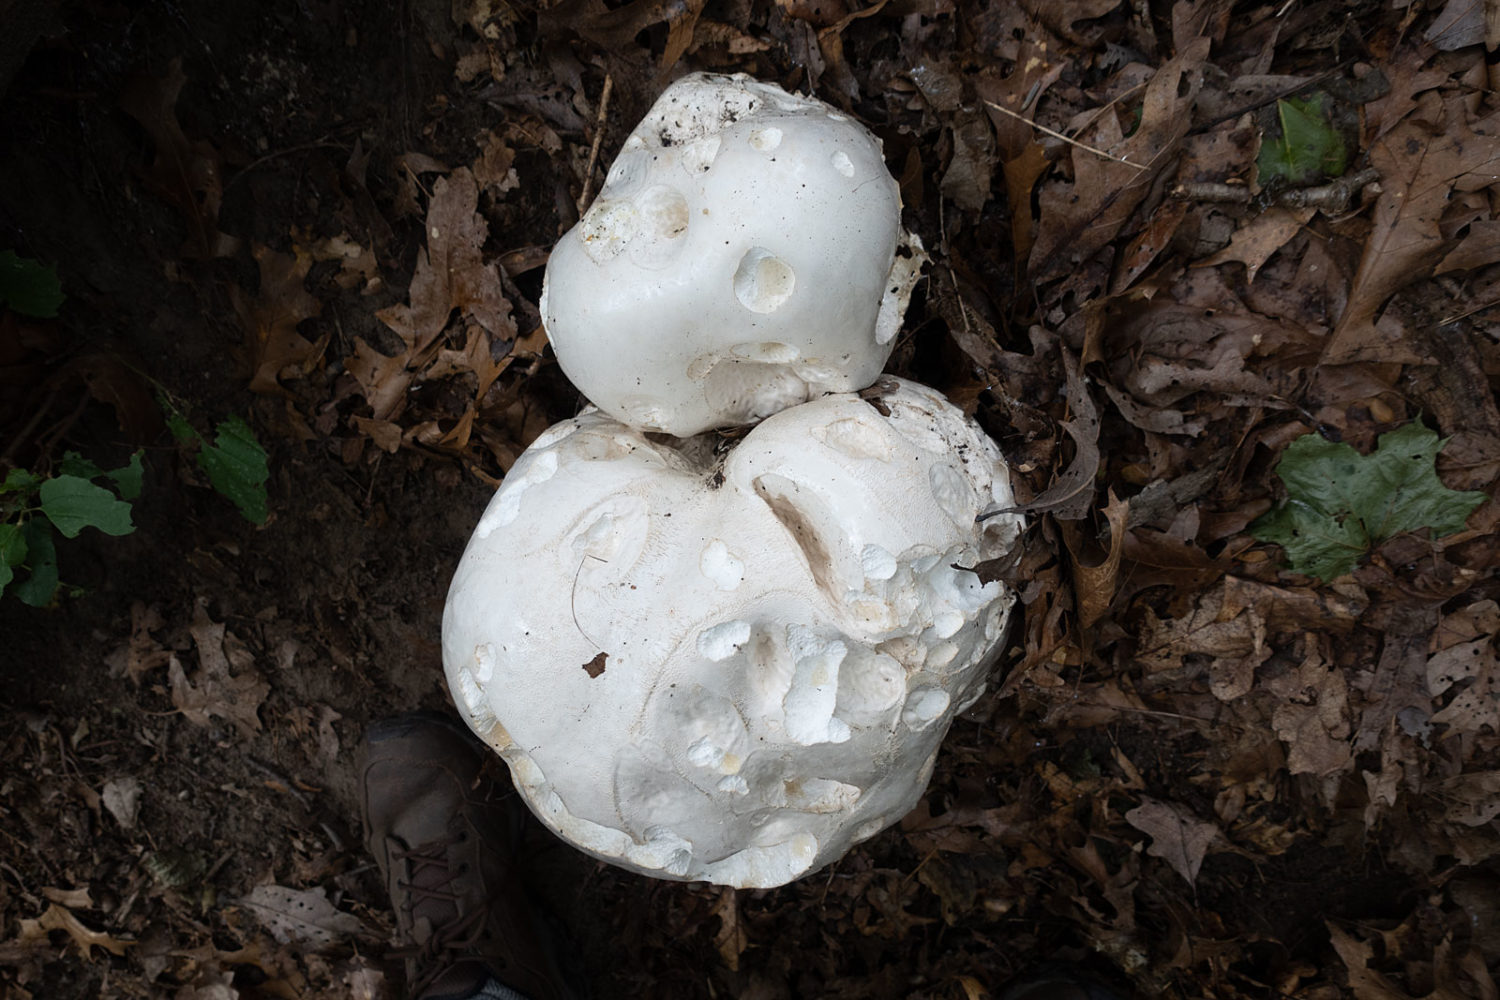 Giant Puffball in the woods after the rain. My size 12 shoe is in the photo to indicate scale.